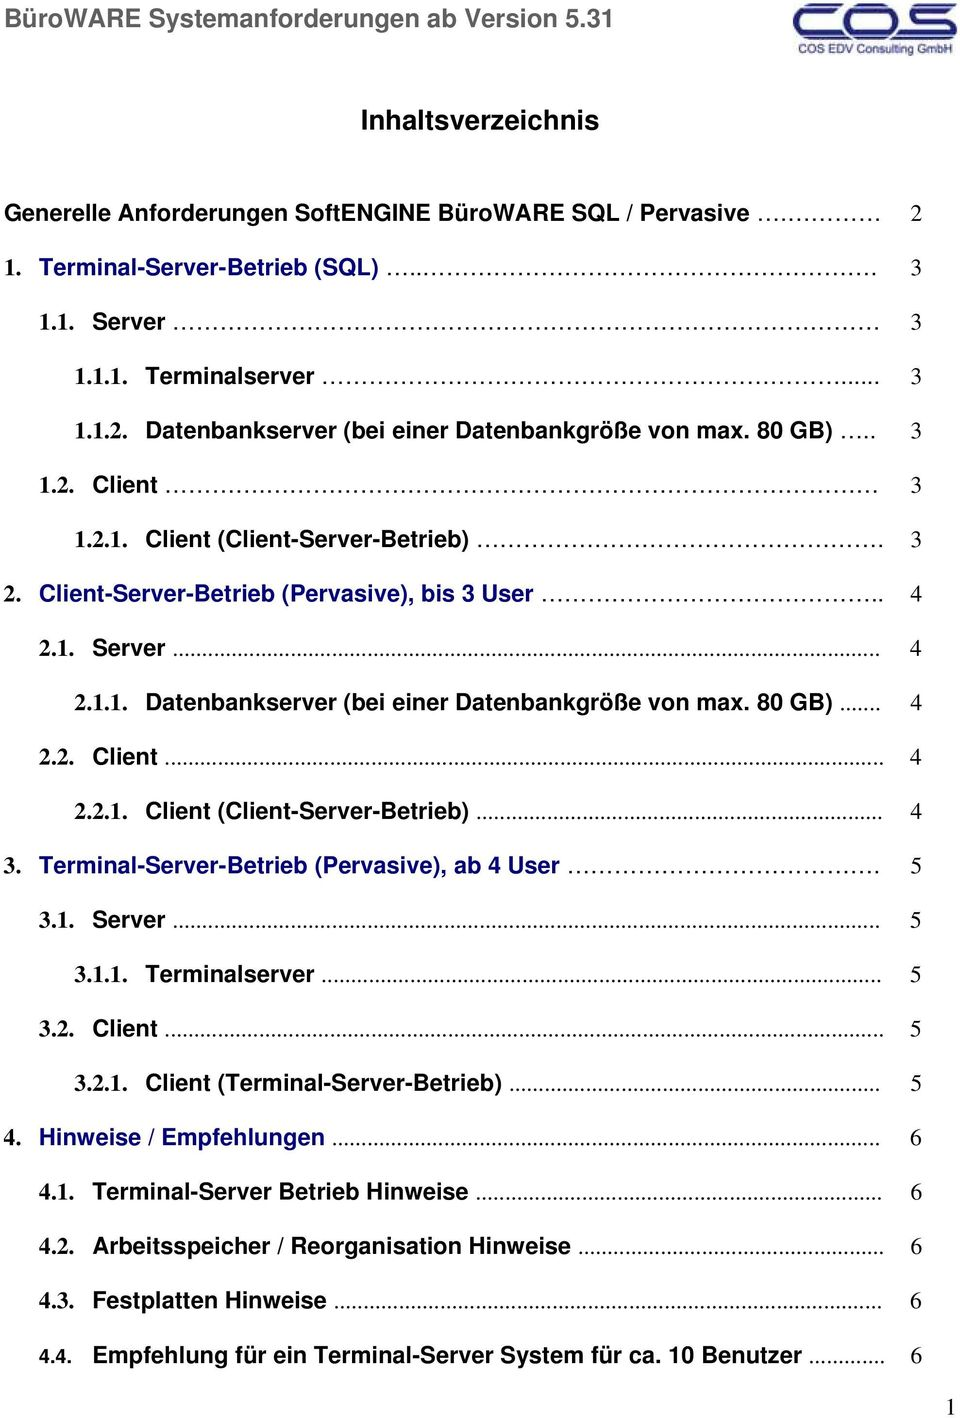 80 GB)... 4 2.2. Client... 4 2.2.1. Client (Client-Server-Betrieb)... 4 3. Terminal-Server-Betrieb (Pervasive), ab 4 User. 5 3.1. Server... 5 3.1.1. Terminalserver... 5 3.2. Client... 5 3.2.1. Client (Terminal-Server-Betrieb).